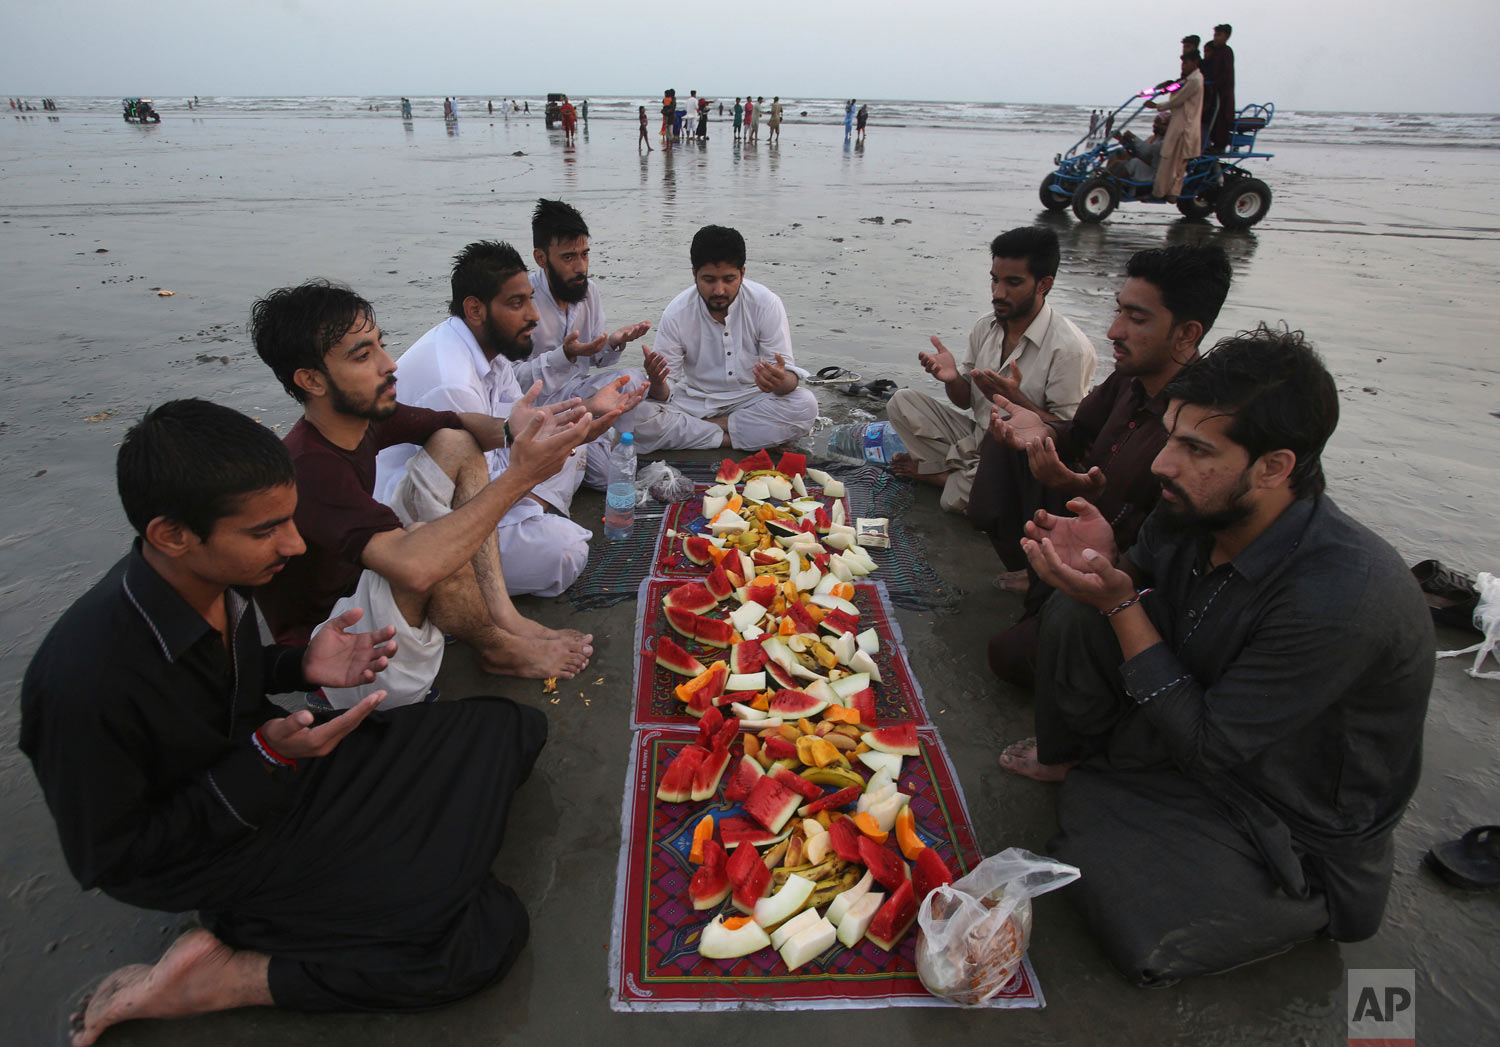 People pray prior to breaking their Ramadan fast at Clifton Beach in Karachi, Pakistan, Saturday, May 19, 2018. Muslims throughout the world are celebrating Ramadan, the holiest month in the Islamic calendar, refraining from eating, drinking, smoking and sex from sunrise to sunset. (AP Photo/Fareed Khan)